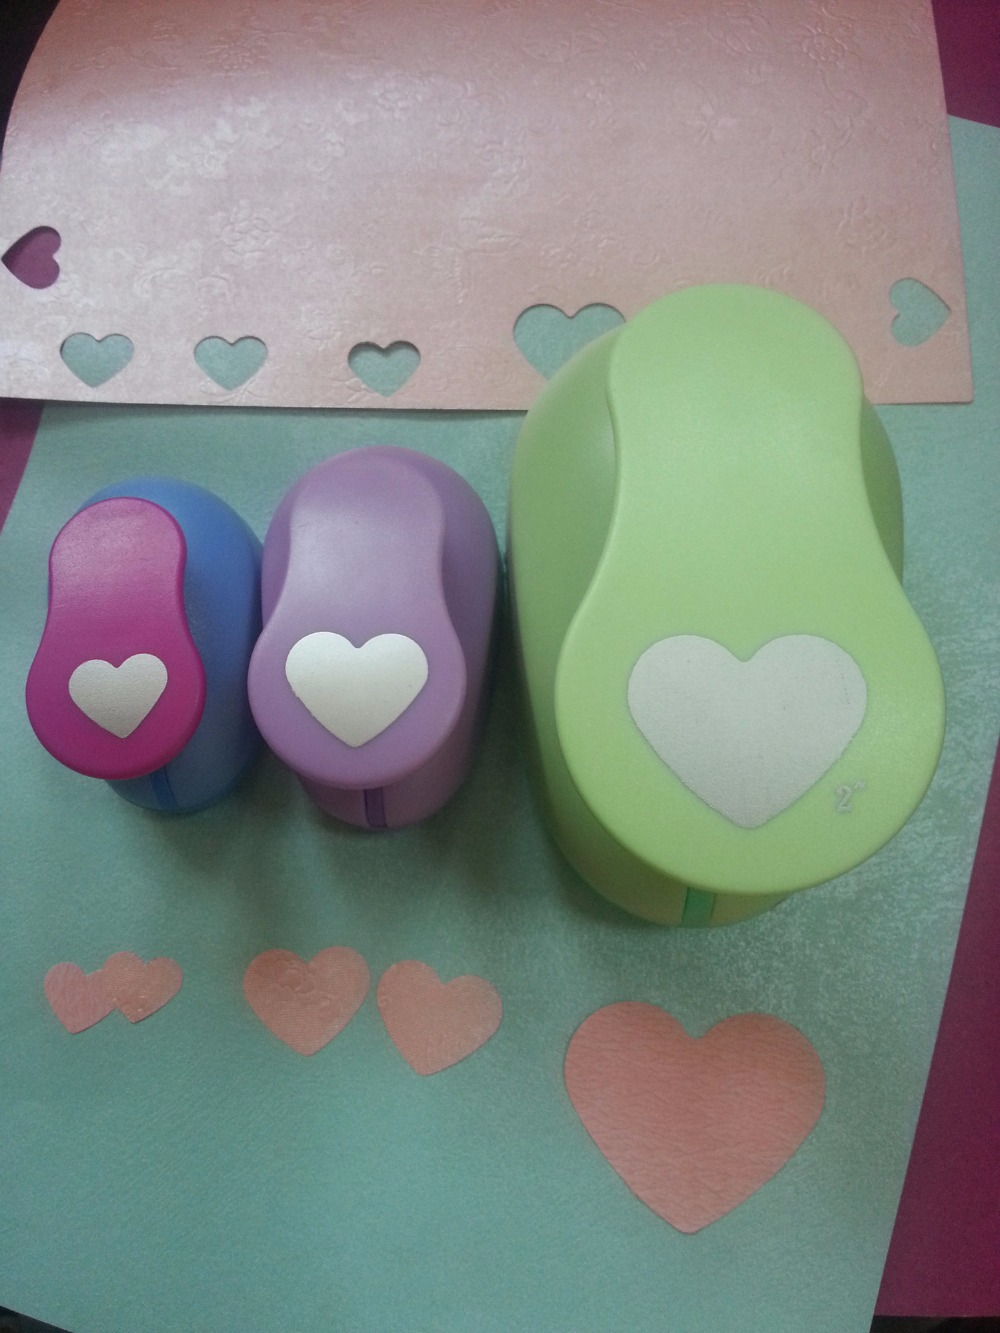 3pcs(5.0cm,2.5cm,1.6cm) heart shape craft punch set Punch Craft Scrapbooking school Paper Puncher eva hole punch free shipping купить недорого в Москве